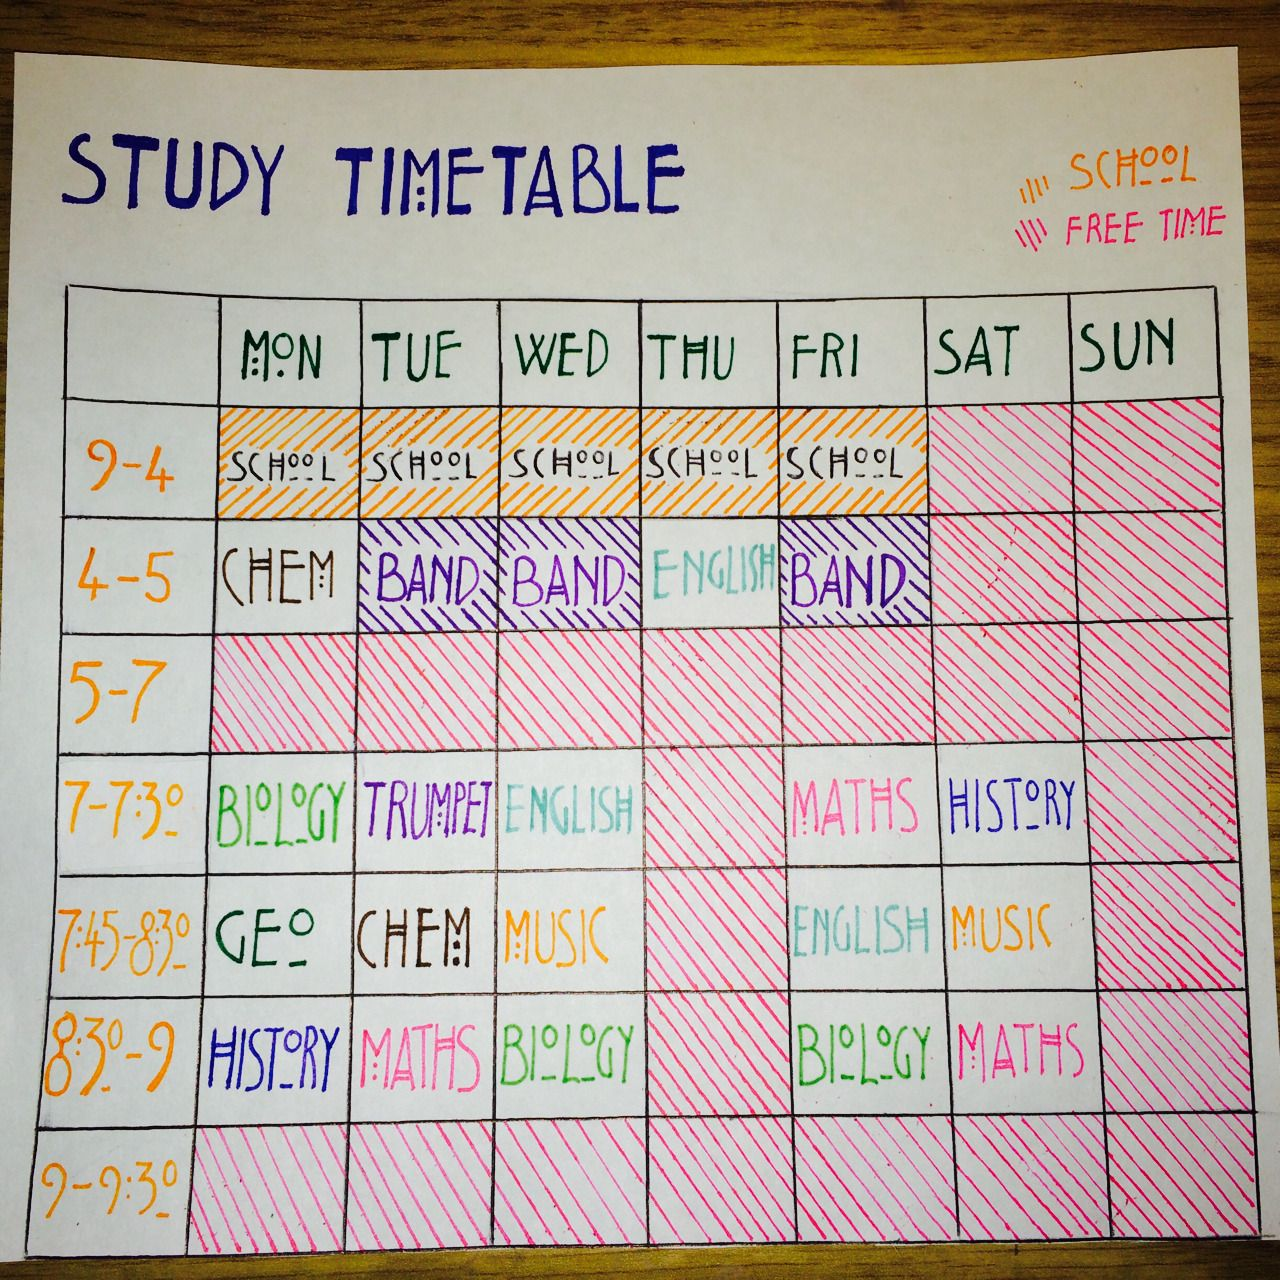 Personal Time Table Format Interesting Don't Stop At Good Become Brilliant Photo  School  Pinterest .